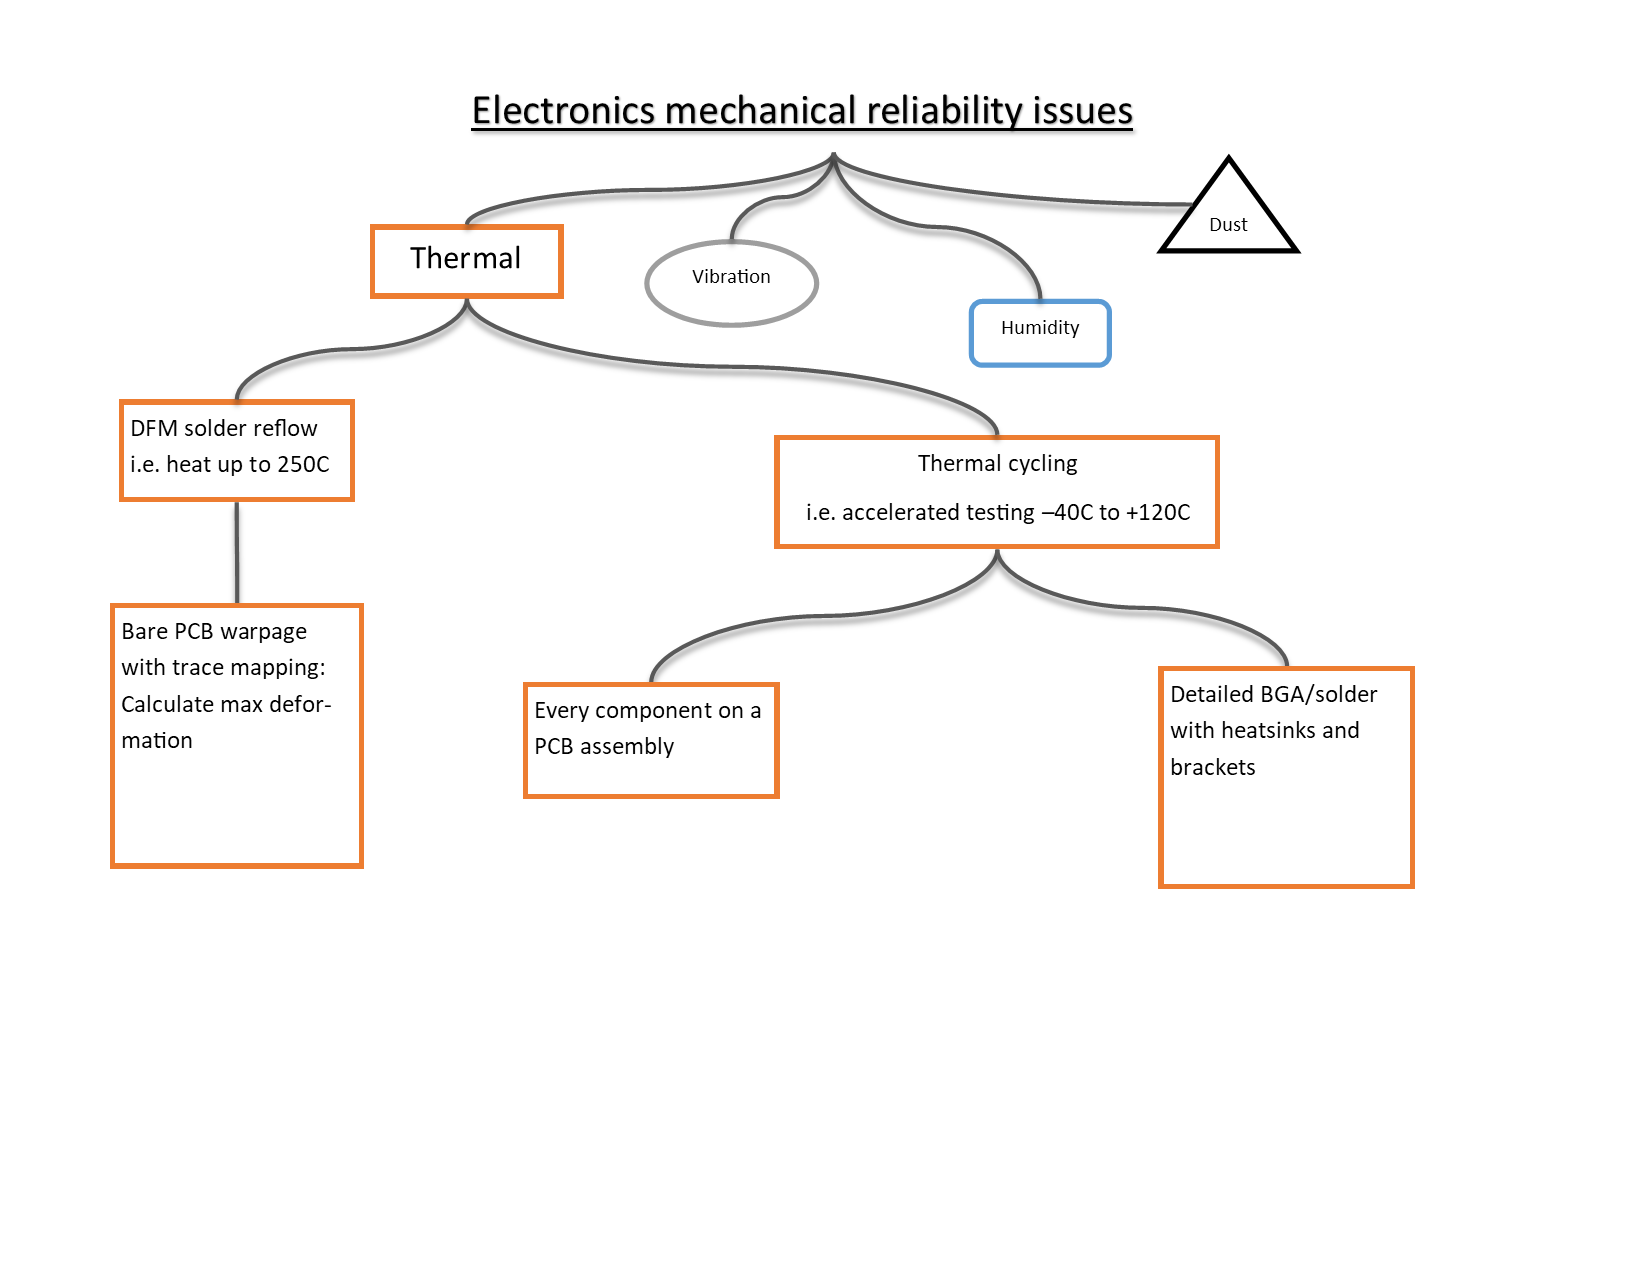 Electronics reliability flow chart thermal H.png